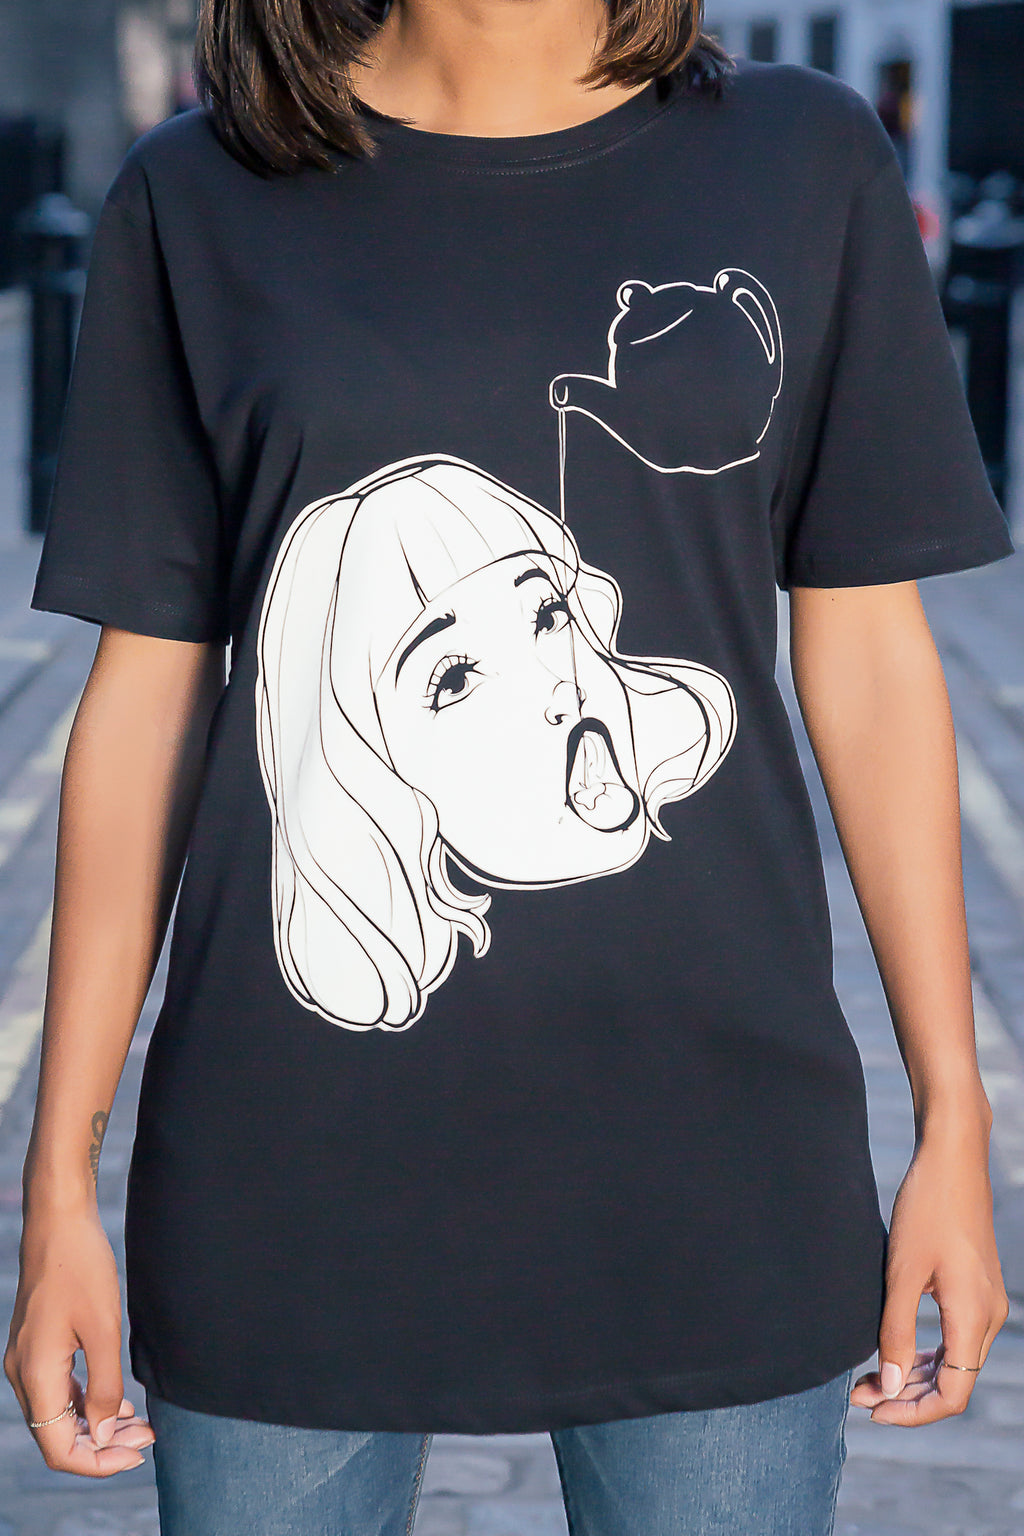 Ahegao and tea t-shirt design